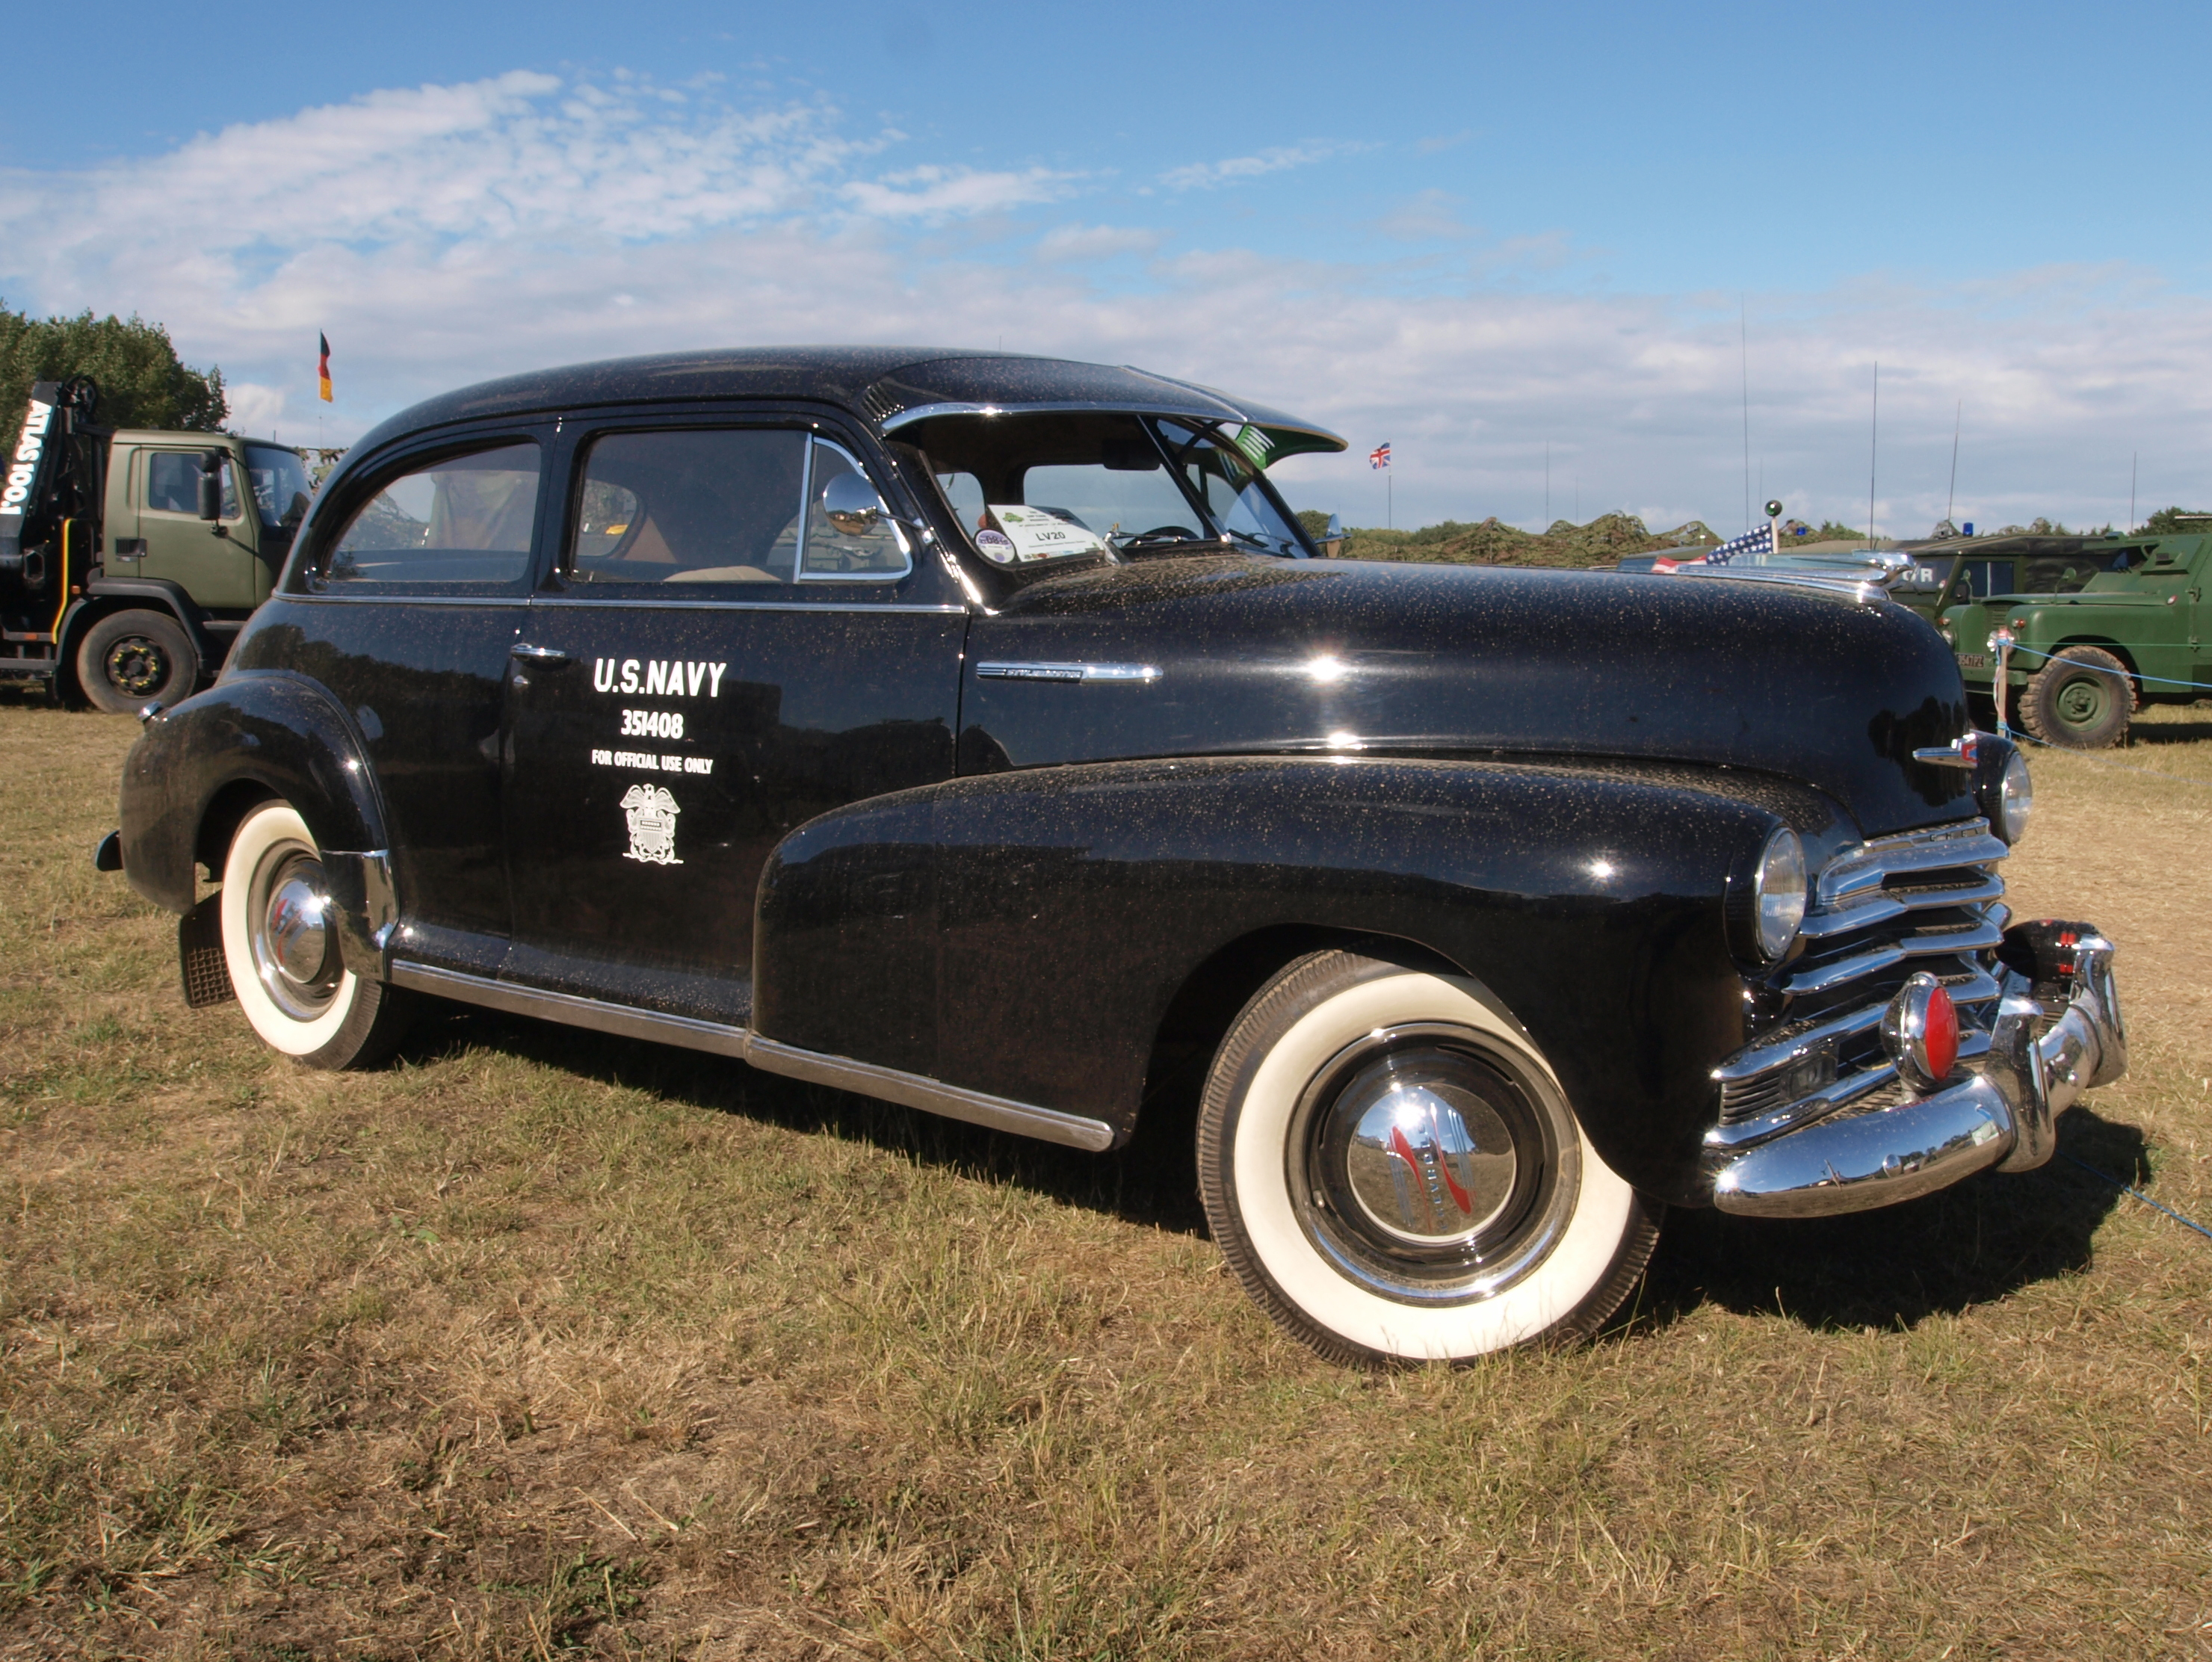 1952 Plymouth Cranbrook Wiring Diagram Free For You 1948 Chevy Sedan Turn Signal Steering 1953 Ford